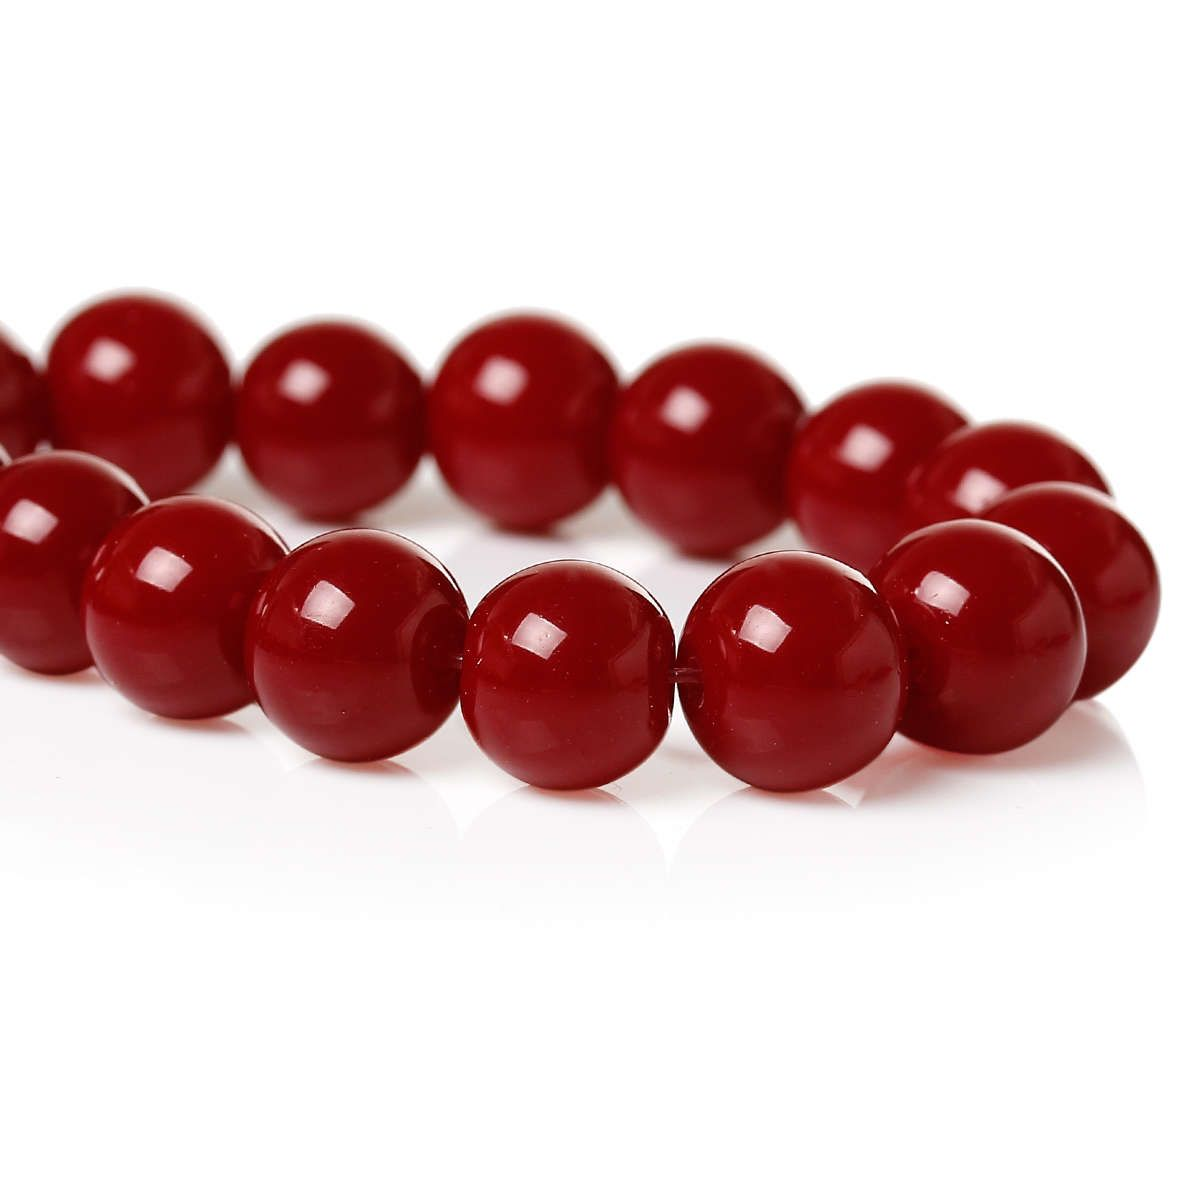 40 Red Wine Glass Beads 8mm Jewelry Making Supplies Red Beads Beads B1371 Glass Beads Red Bead Jewelry Making Supplies